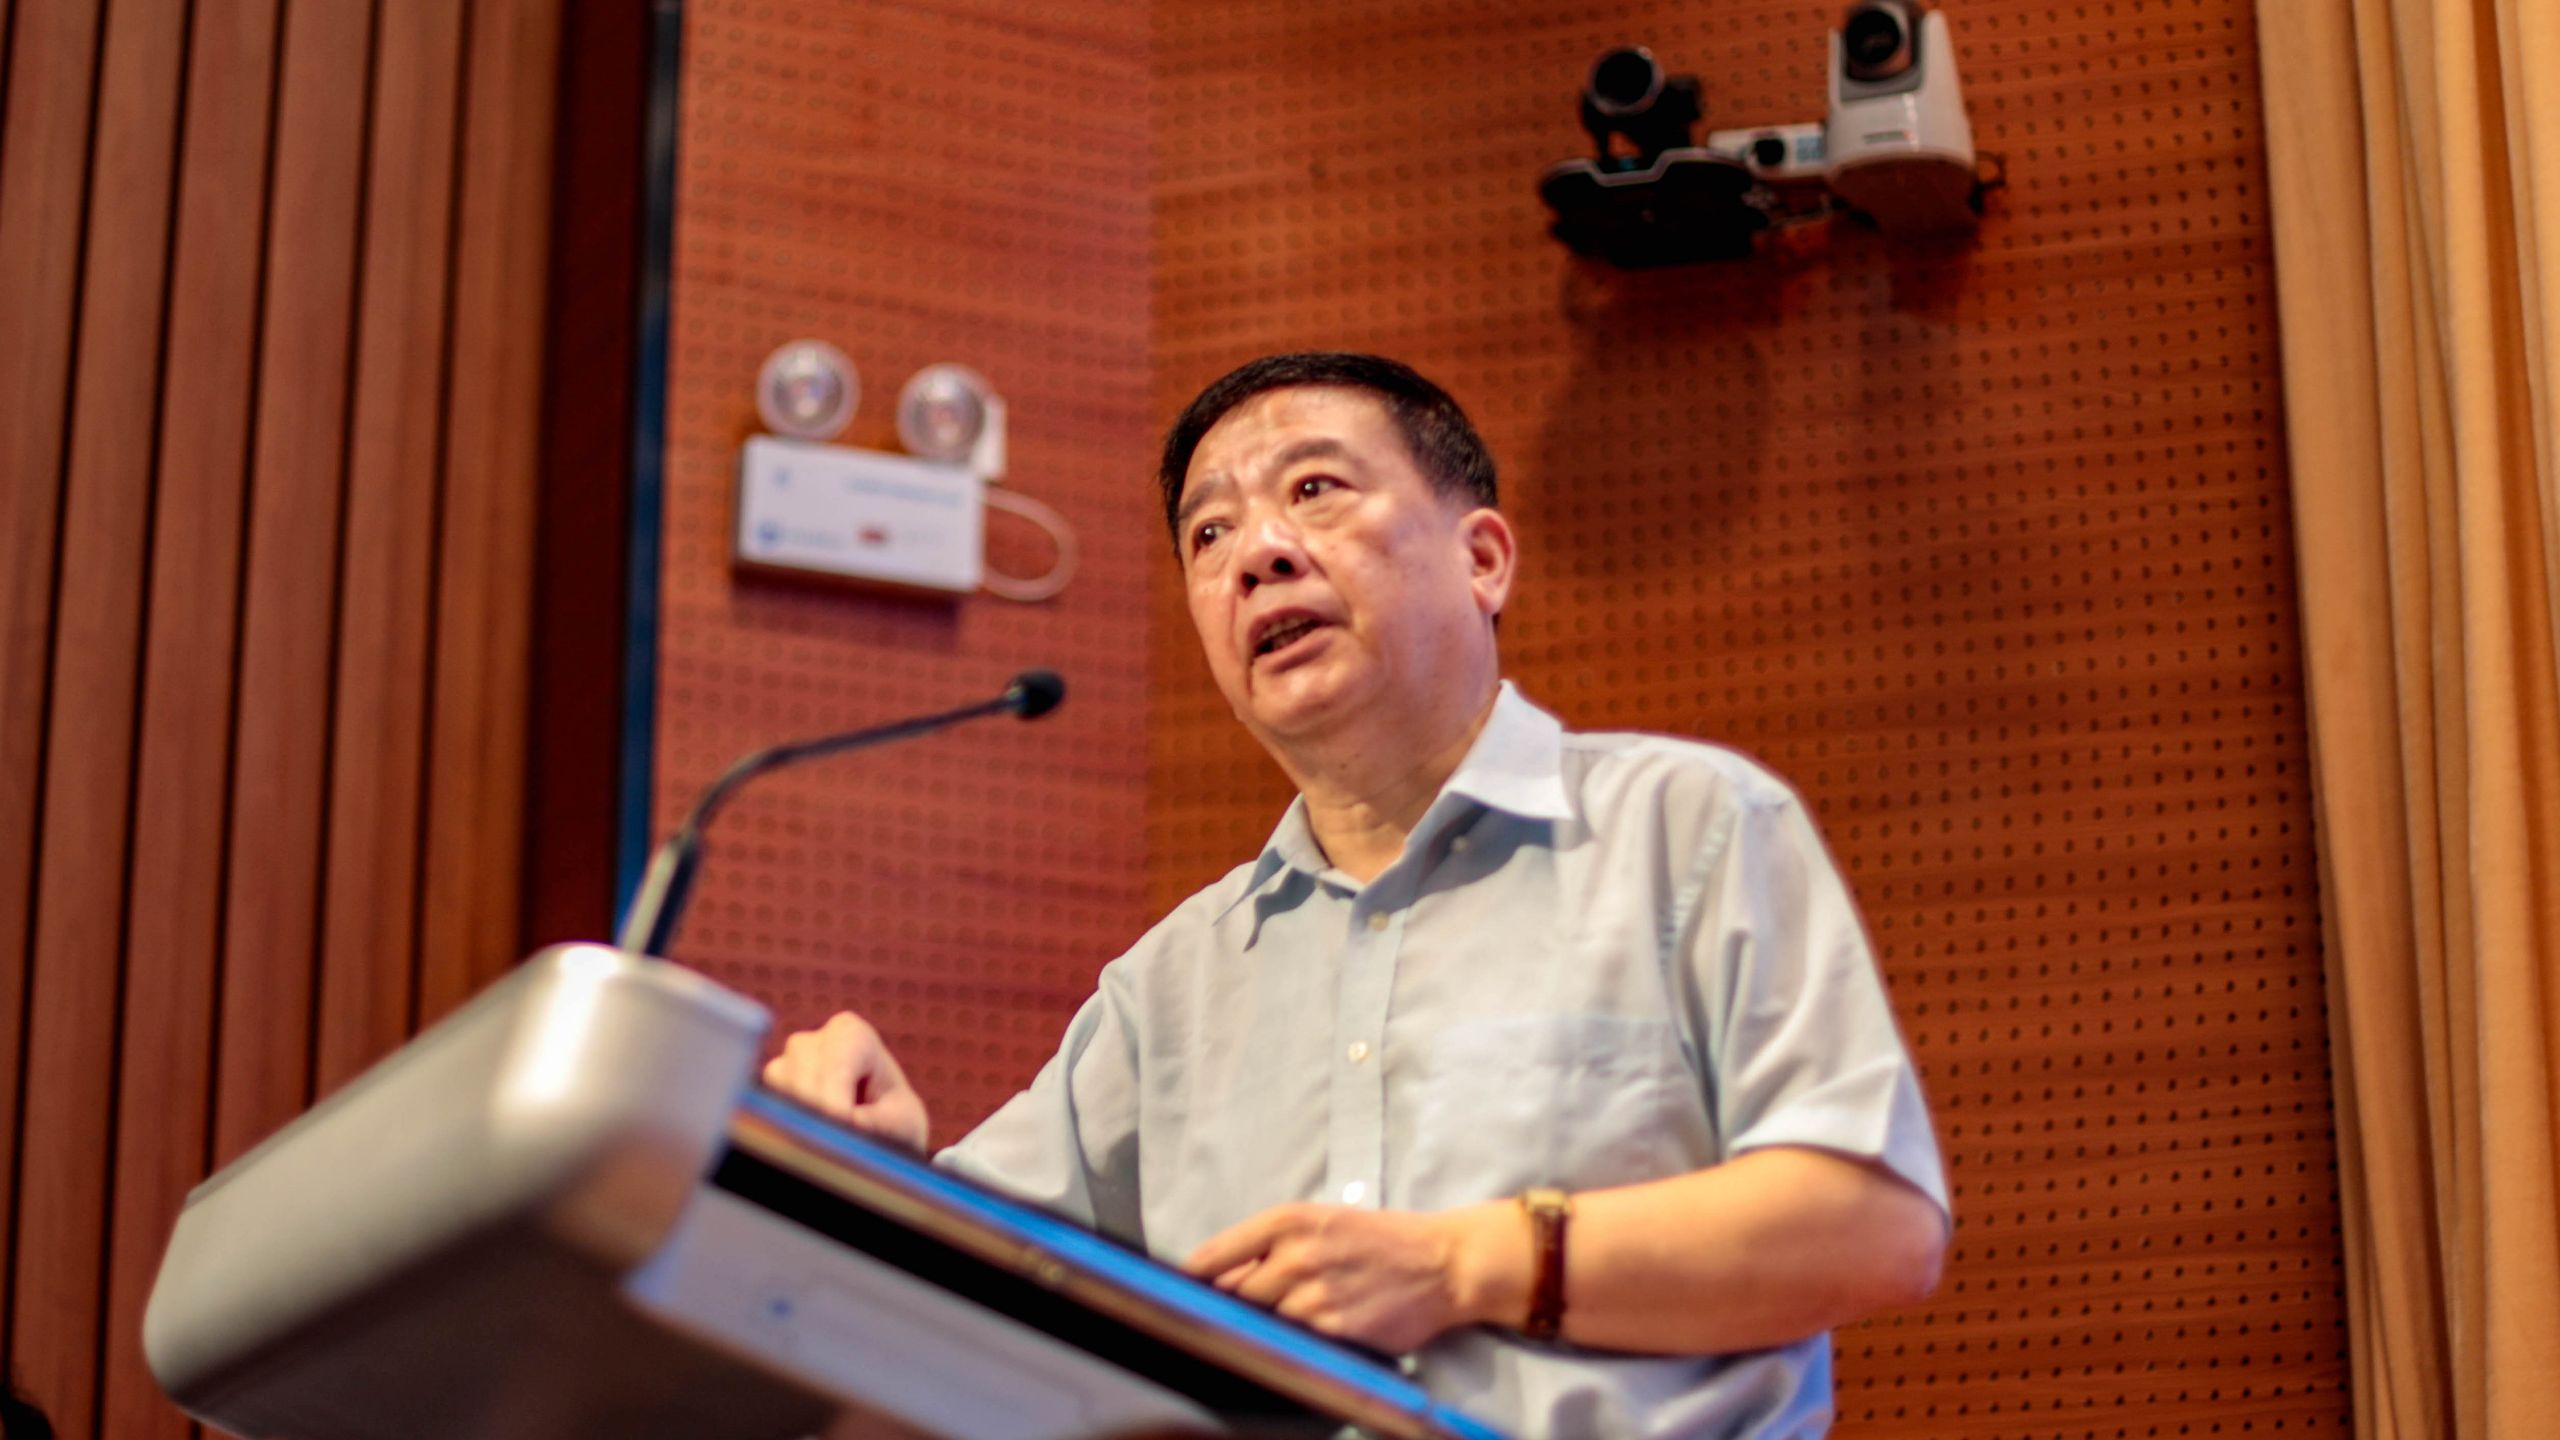 Mr. Ming Xu, former Vice Governor of Jiangsu